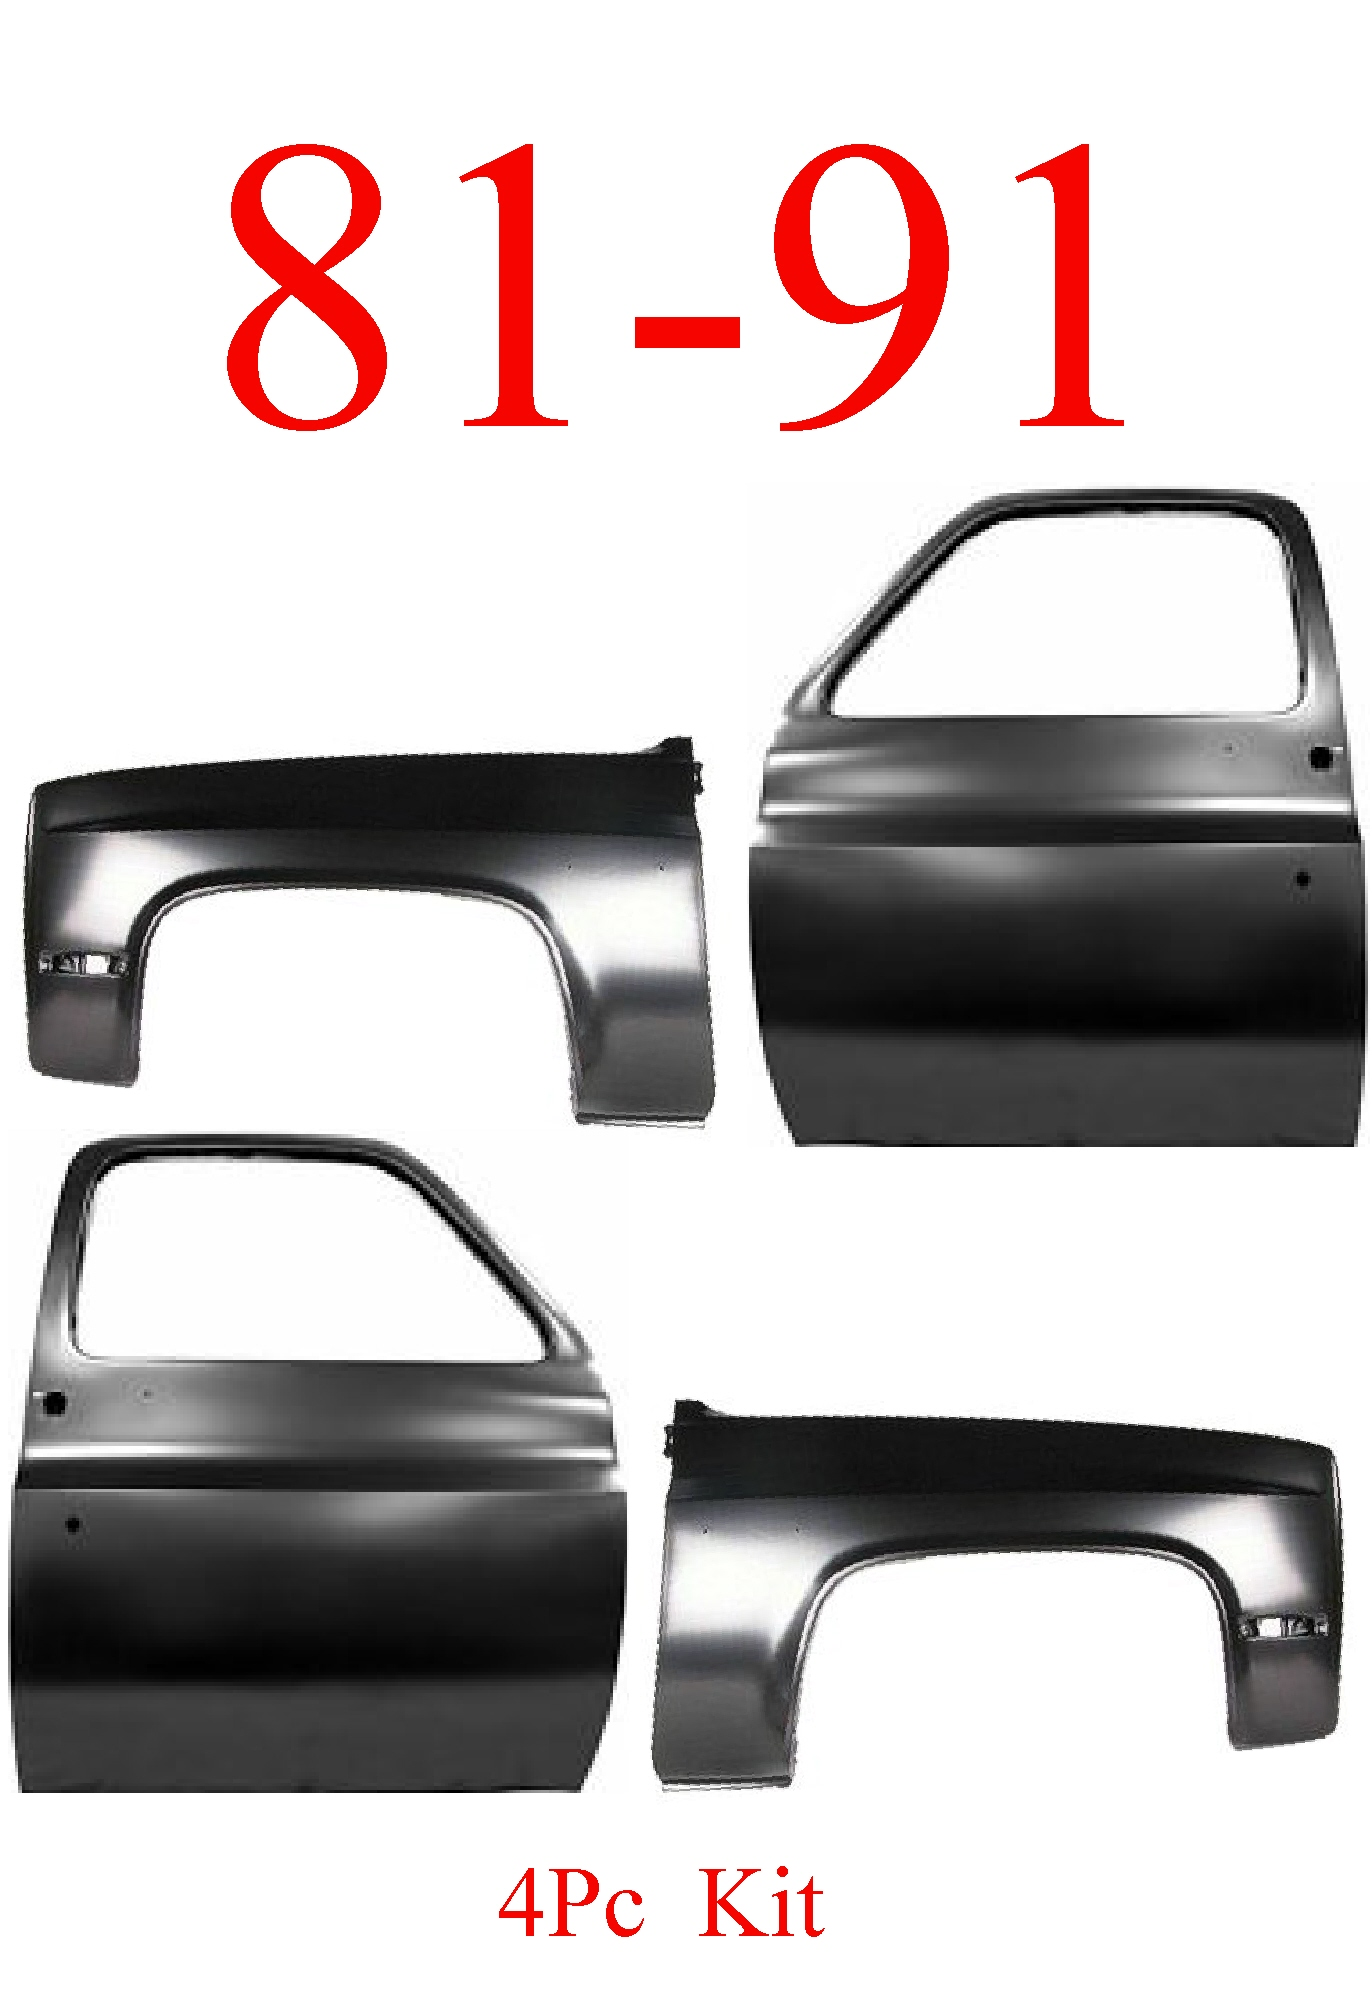 81-91 Chevy GMC Doors & Fenders 4Pc Kit